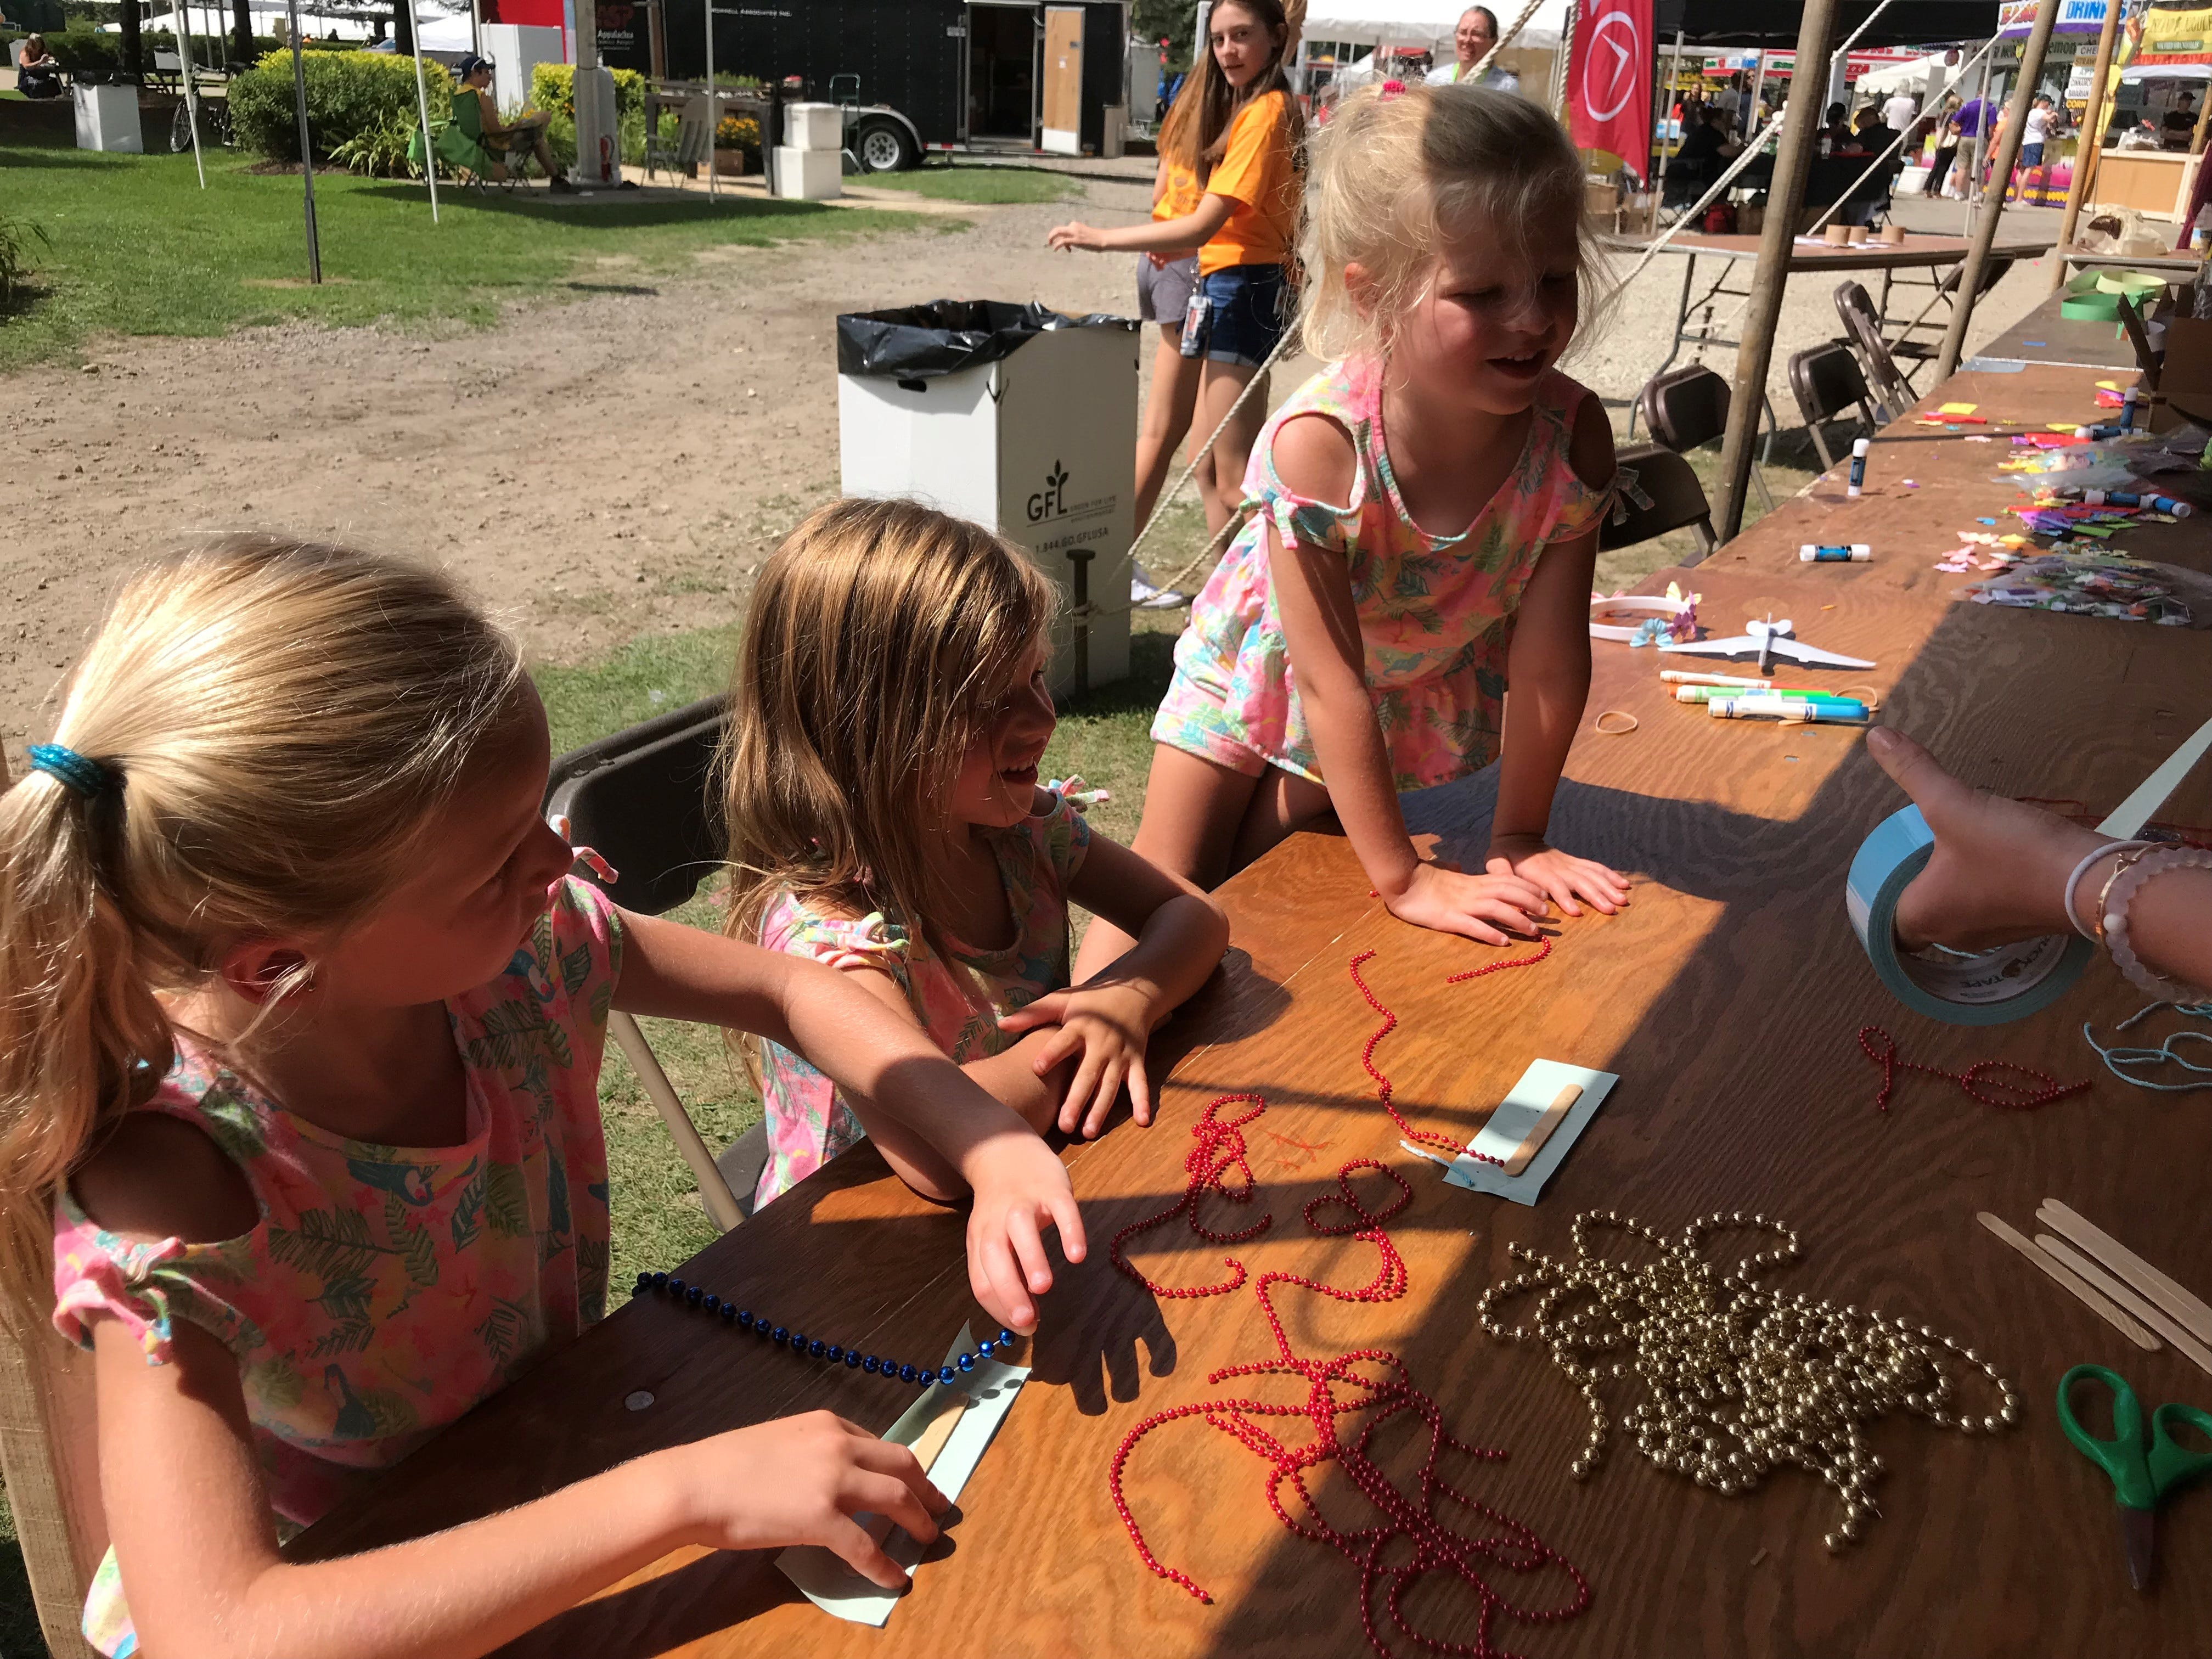 Joslyn Kozub (left), 6, and twin sisters Sophia and Ariel took part in the kids' activities area Friday at Milford Memories.